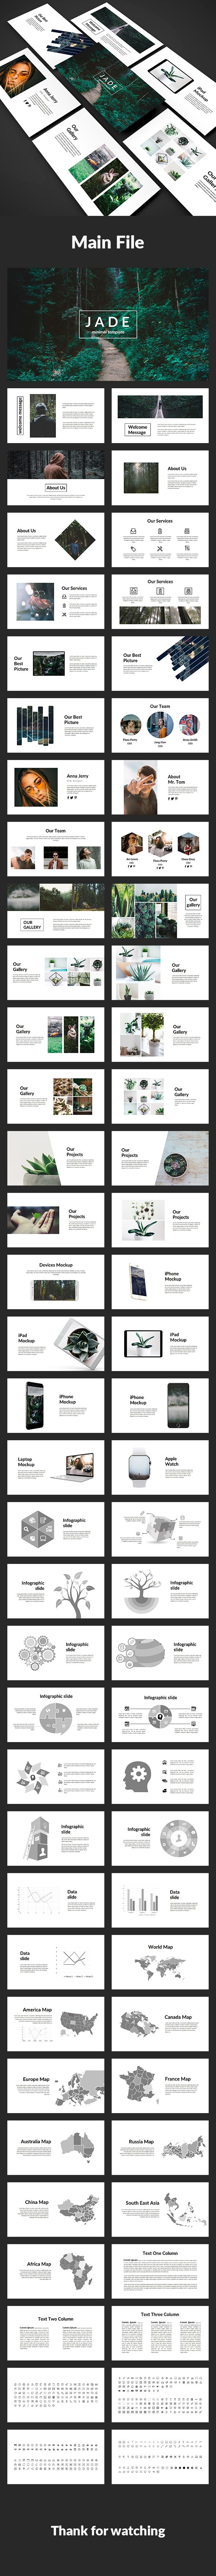 jade-creative powerpoint template | creative powerpoint, template, Presentation templates